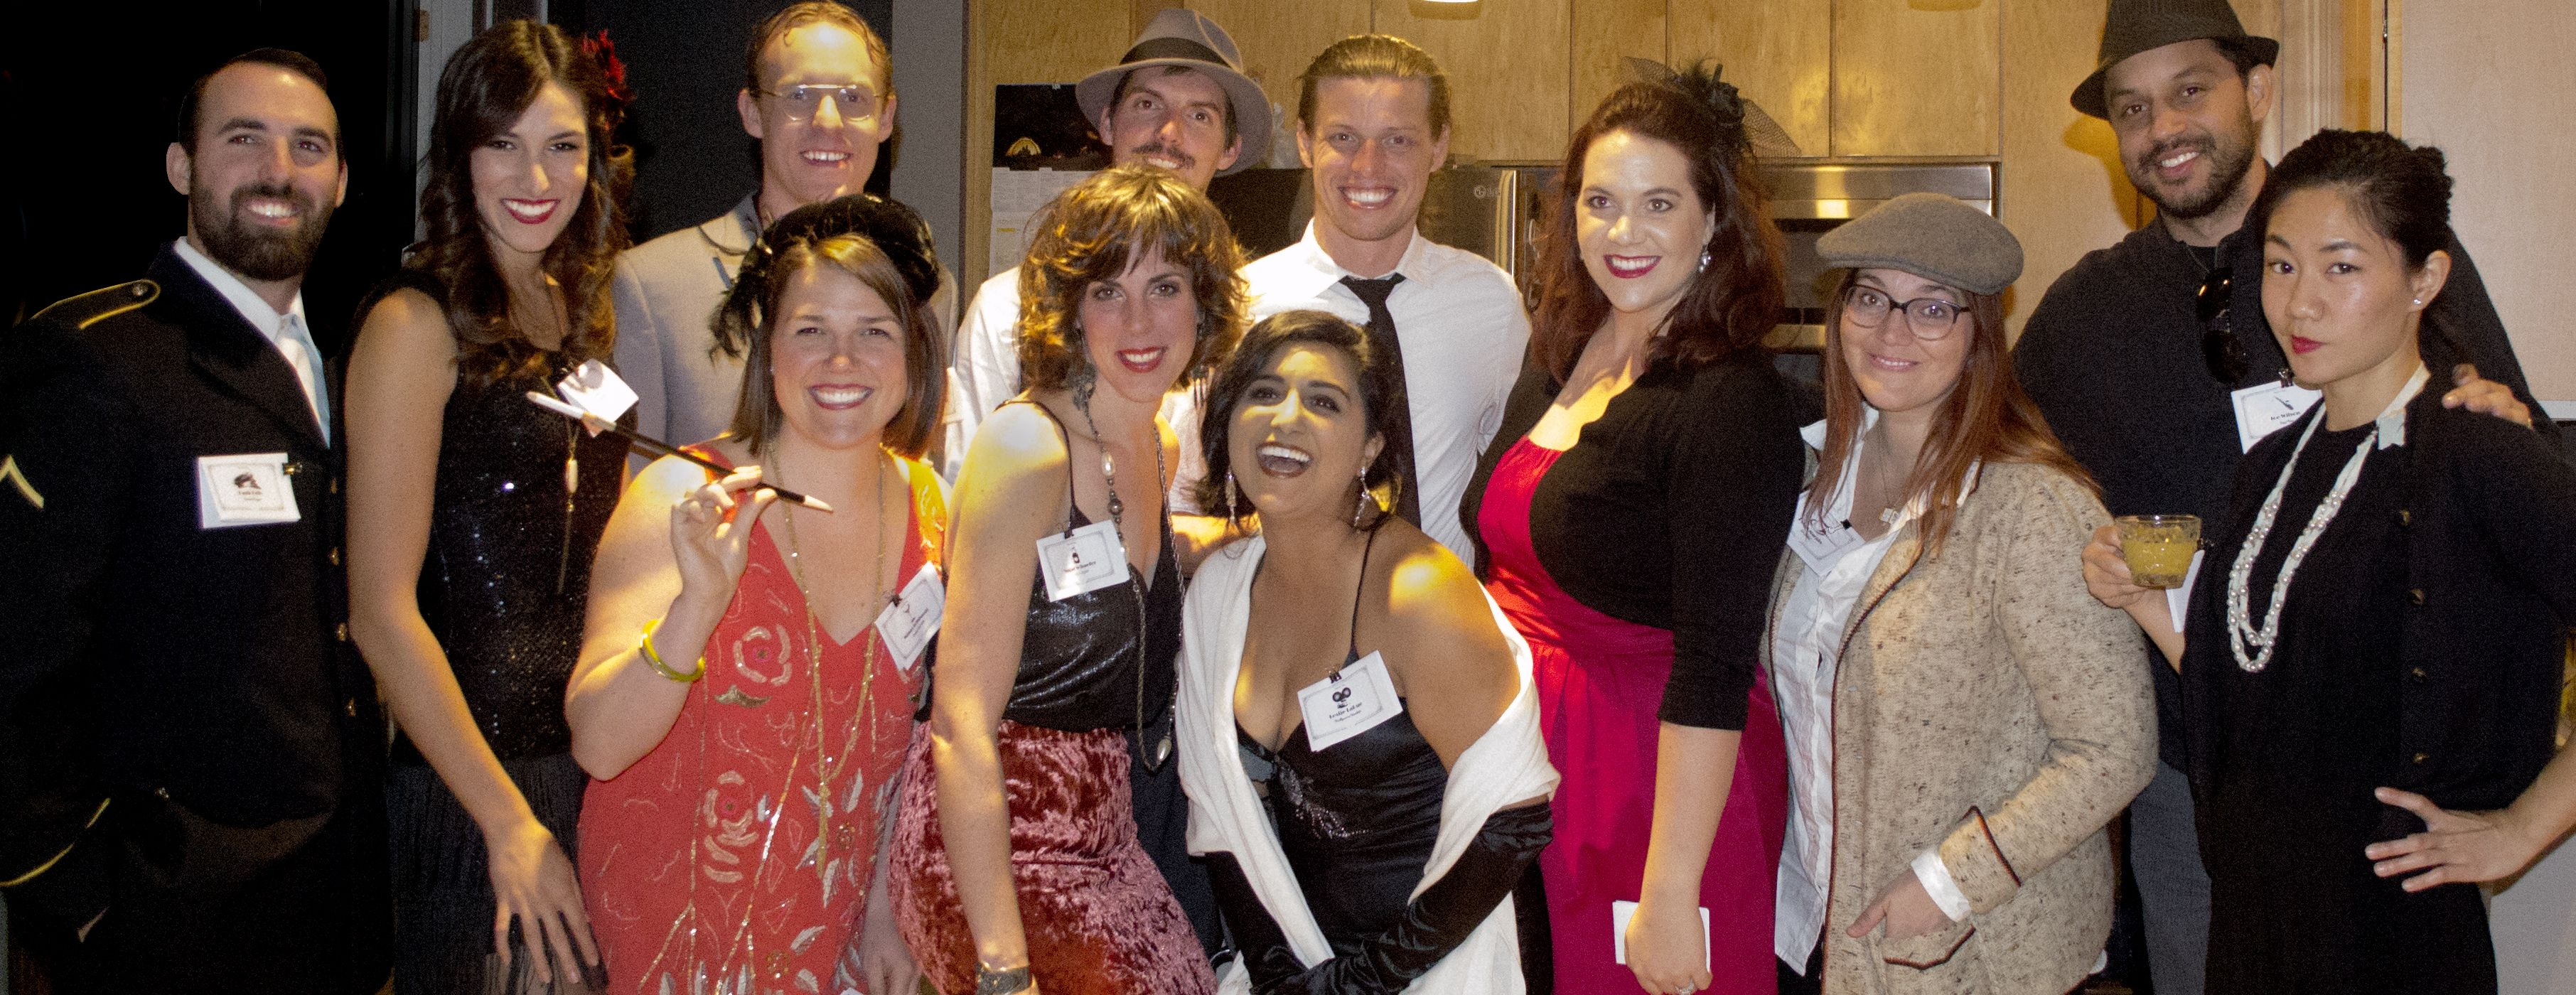 Pin on How to Throw a 1920s Murder Mystery Party